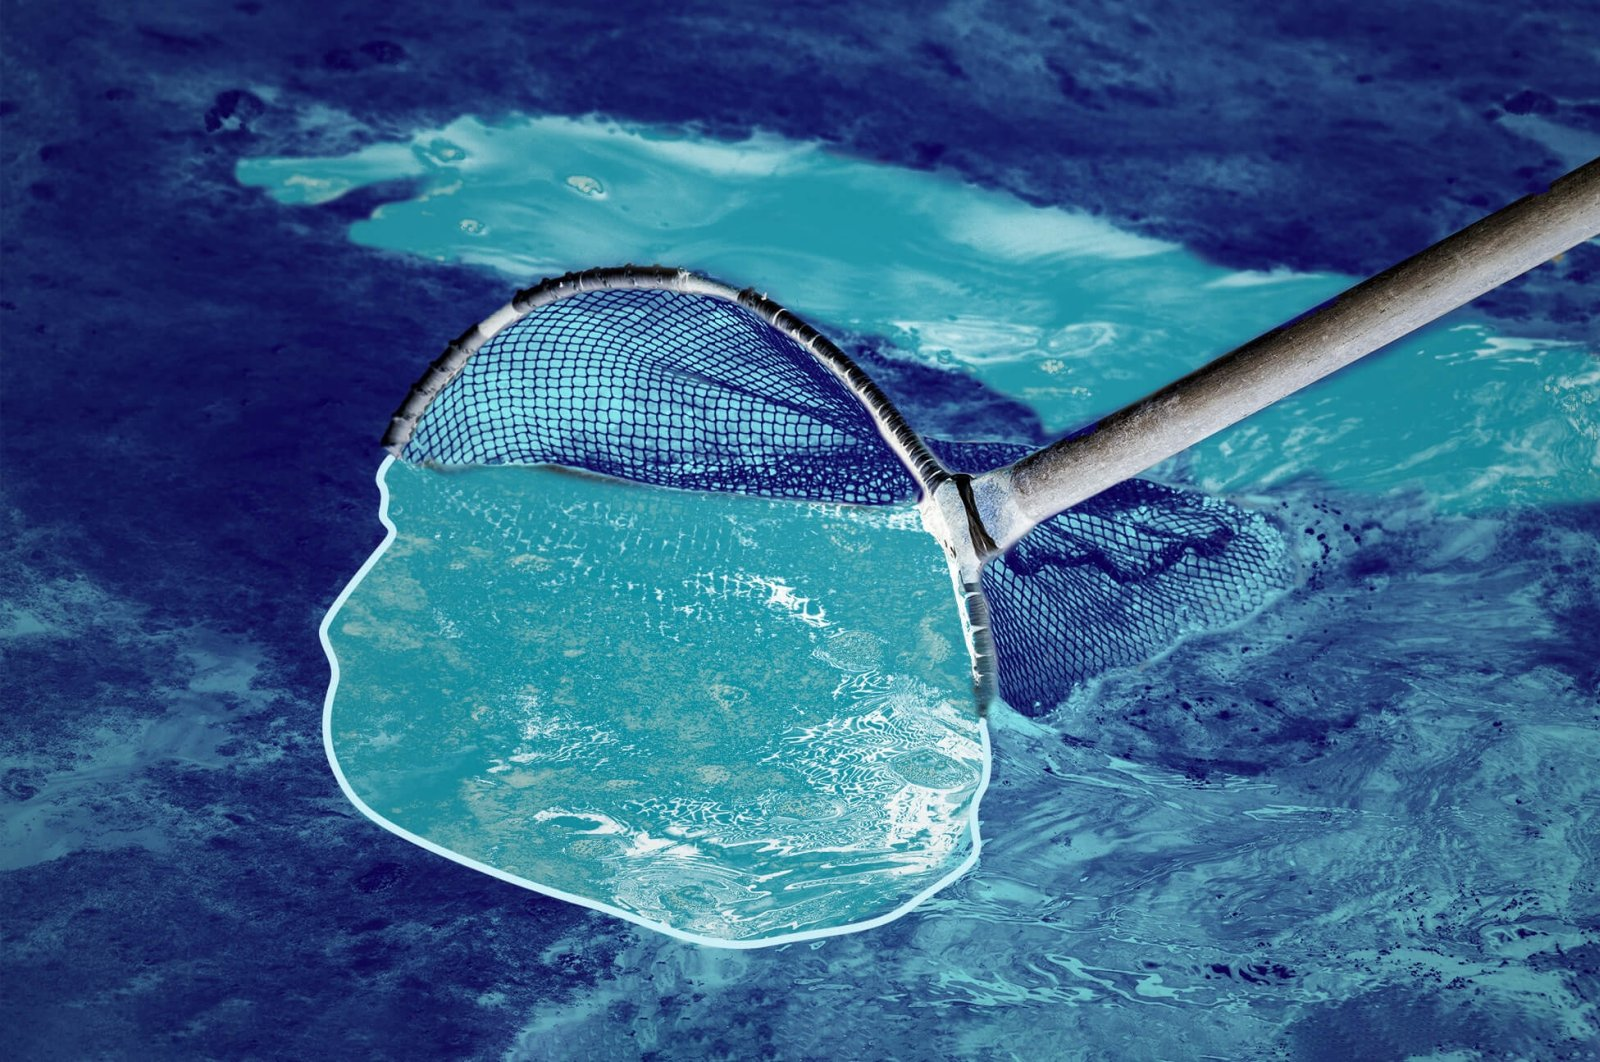 Daily Sabah photo illustration of the cleaning effort against marine mucilage spreading across Turkish seas.